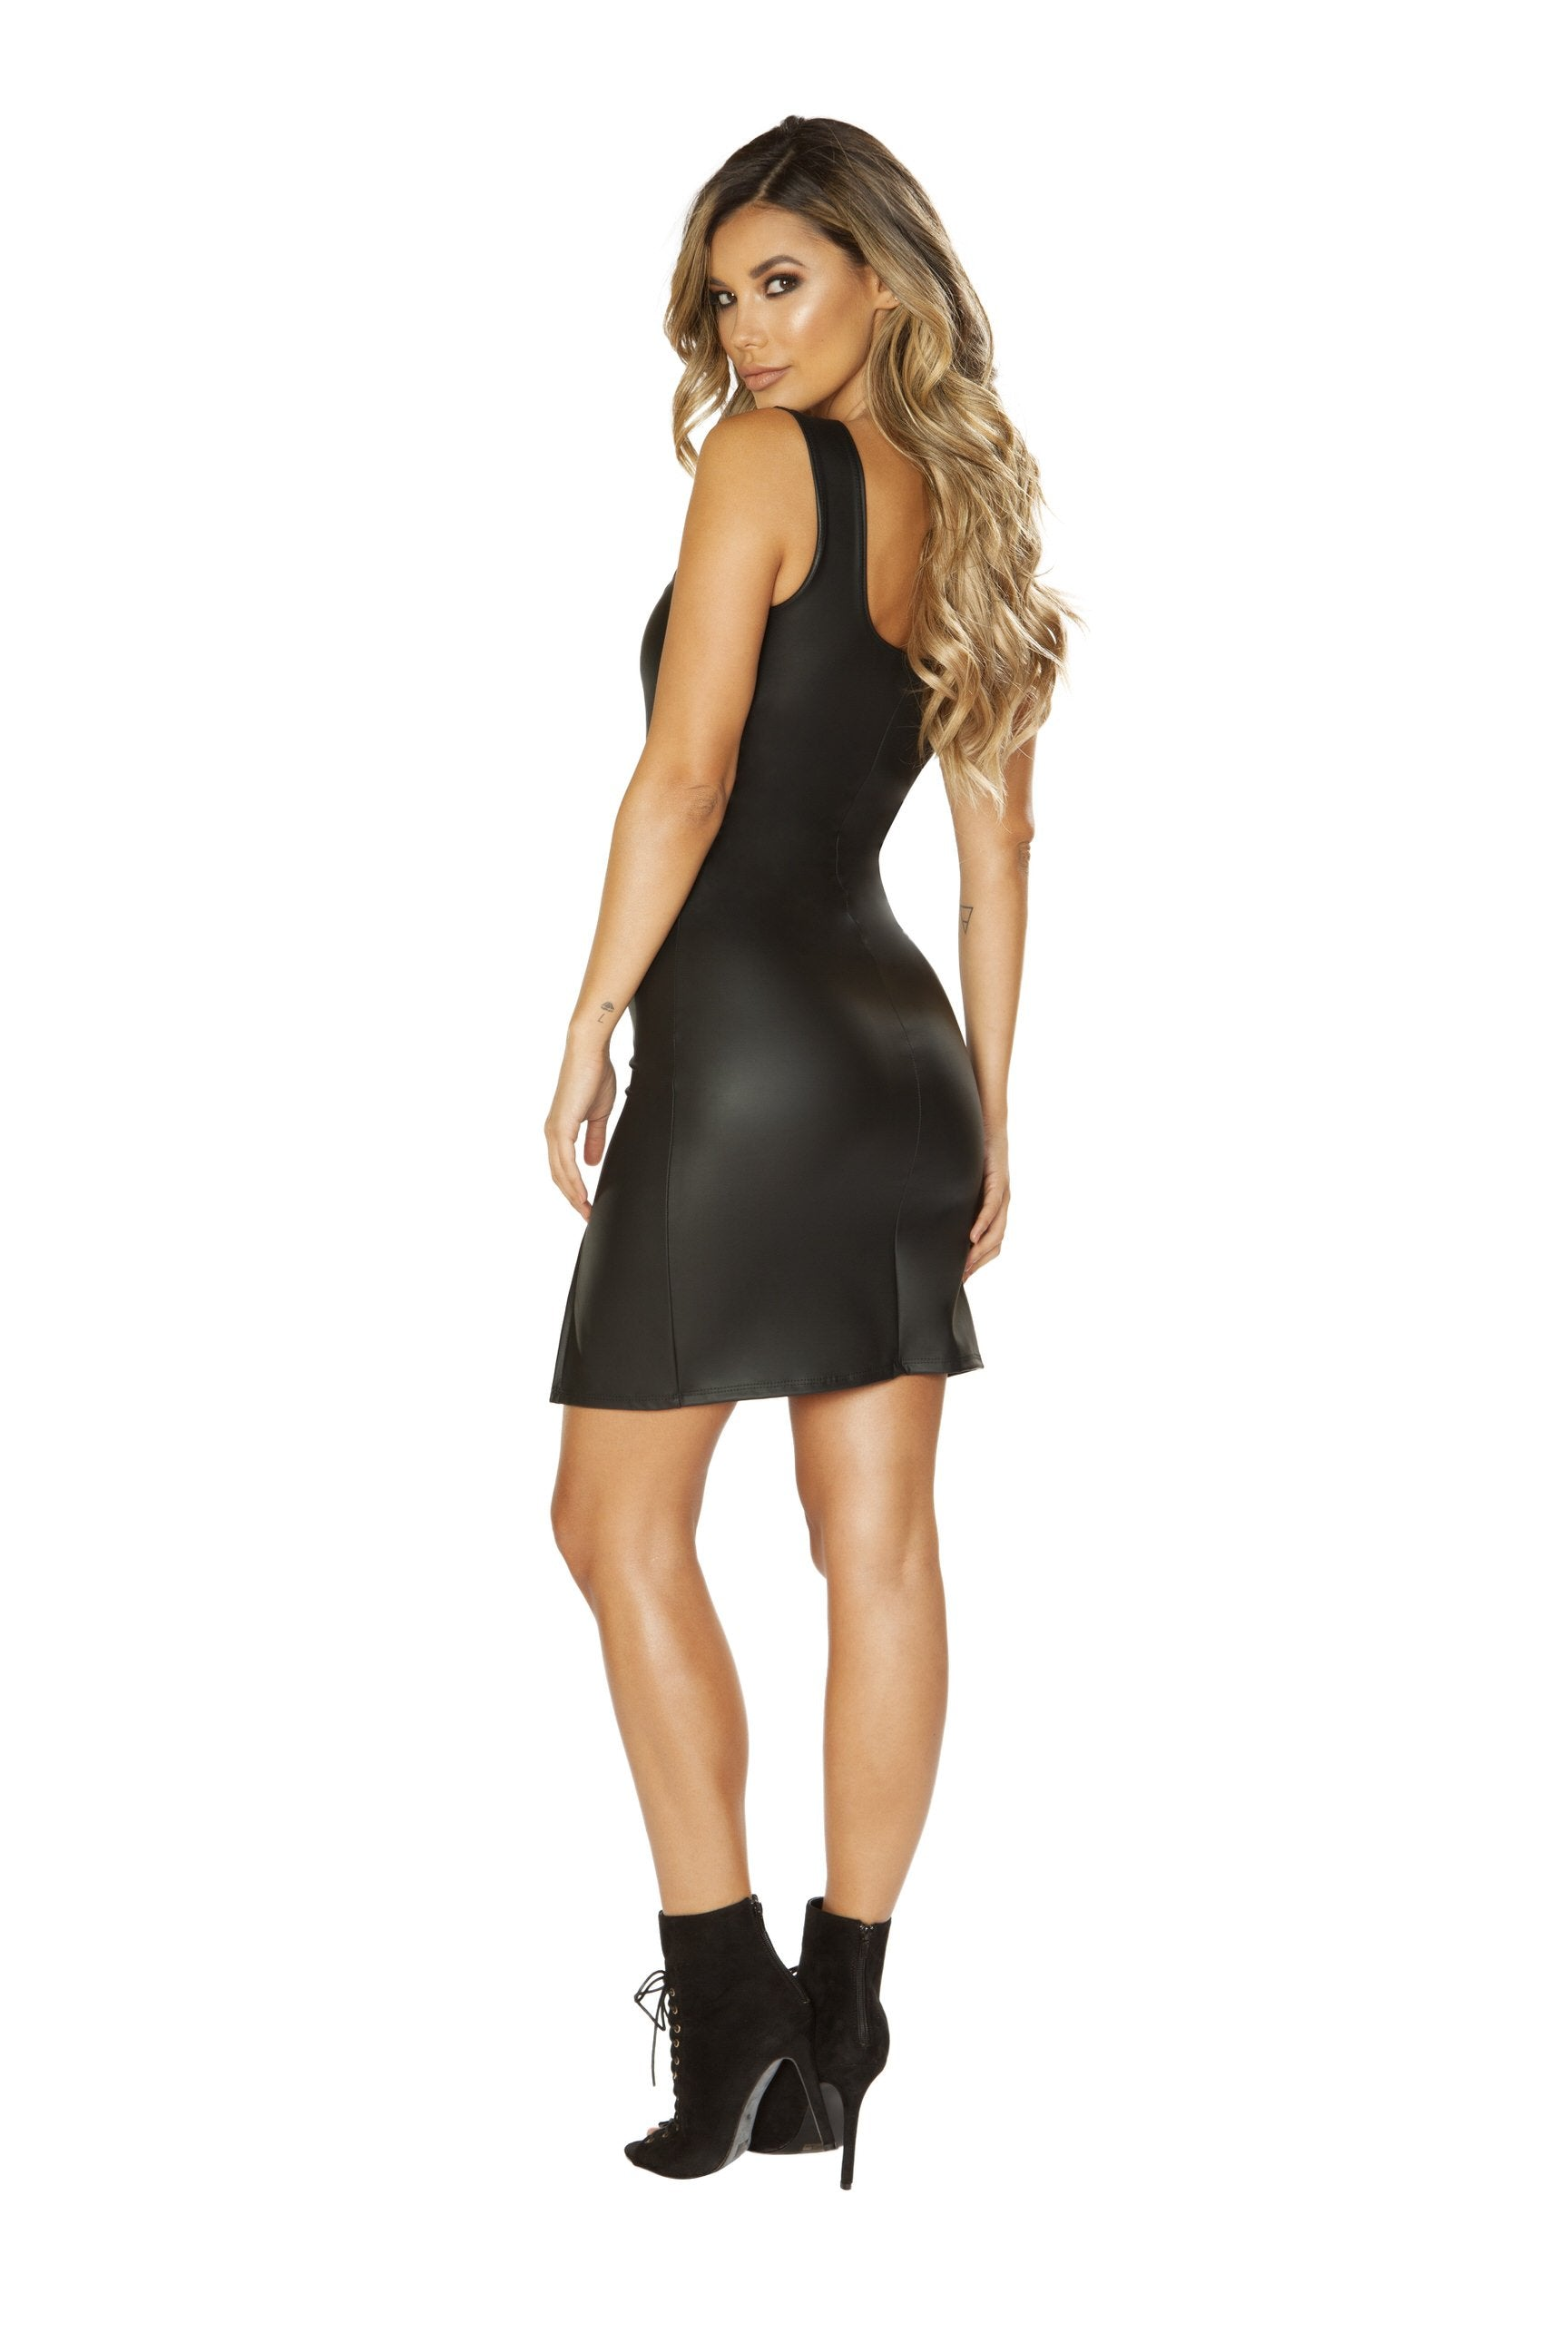 3664 - Leather Look Dress with V-Wire Detail & Slit